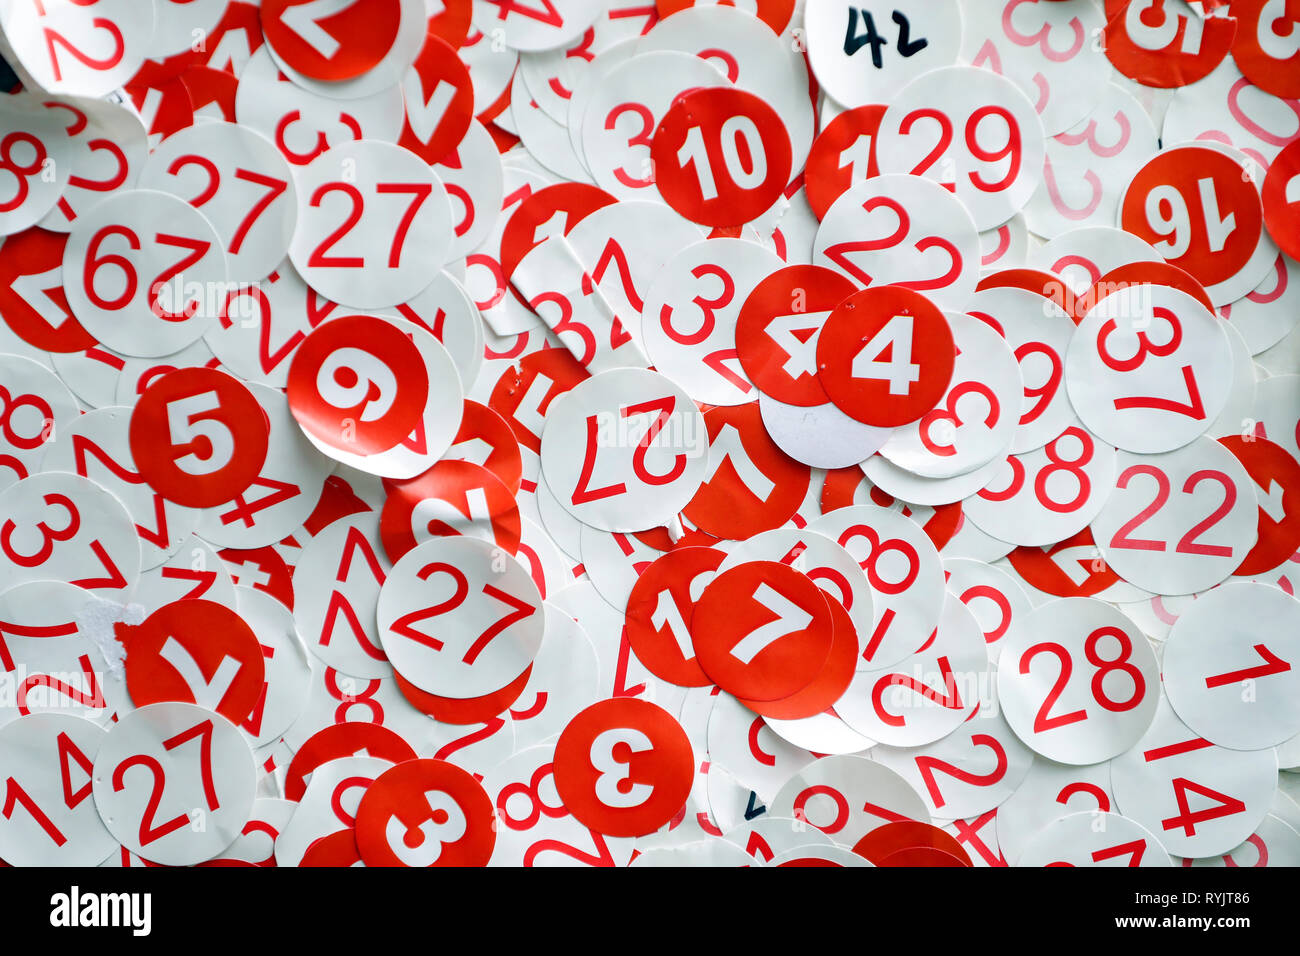 Stickers. Numbers.  Singapore. - Stock Image